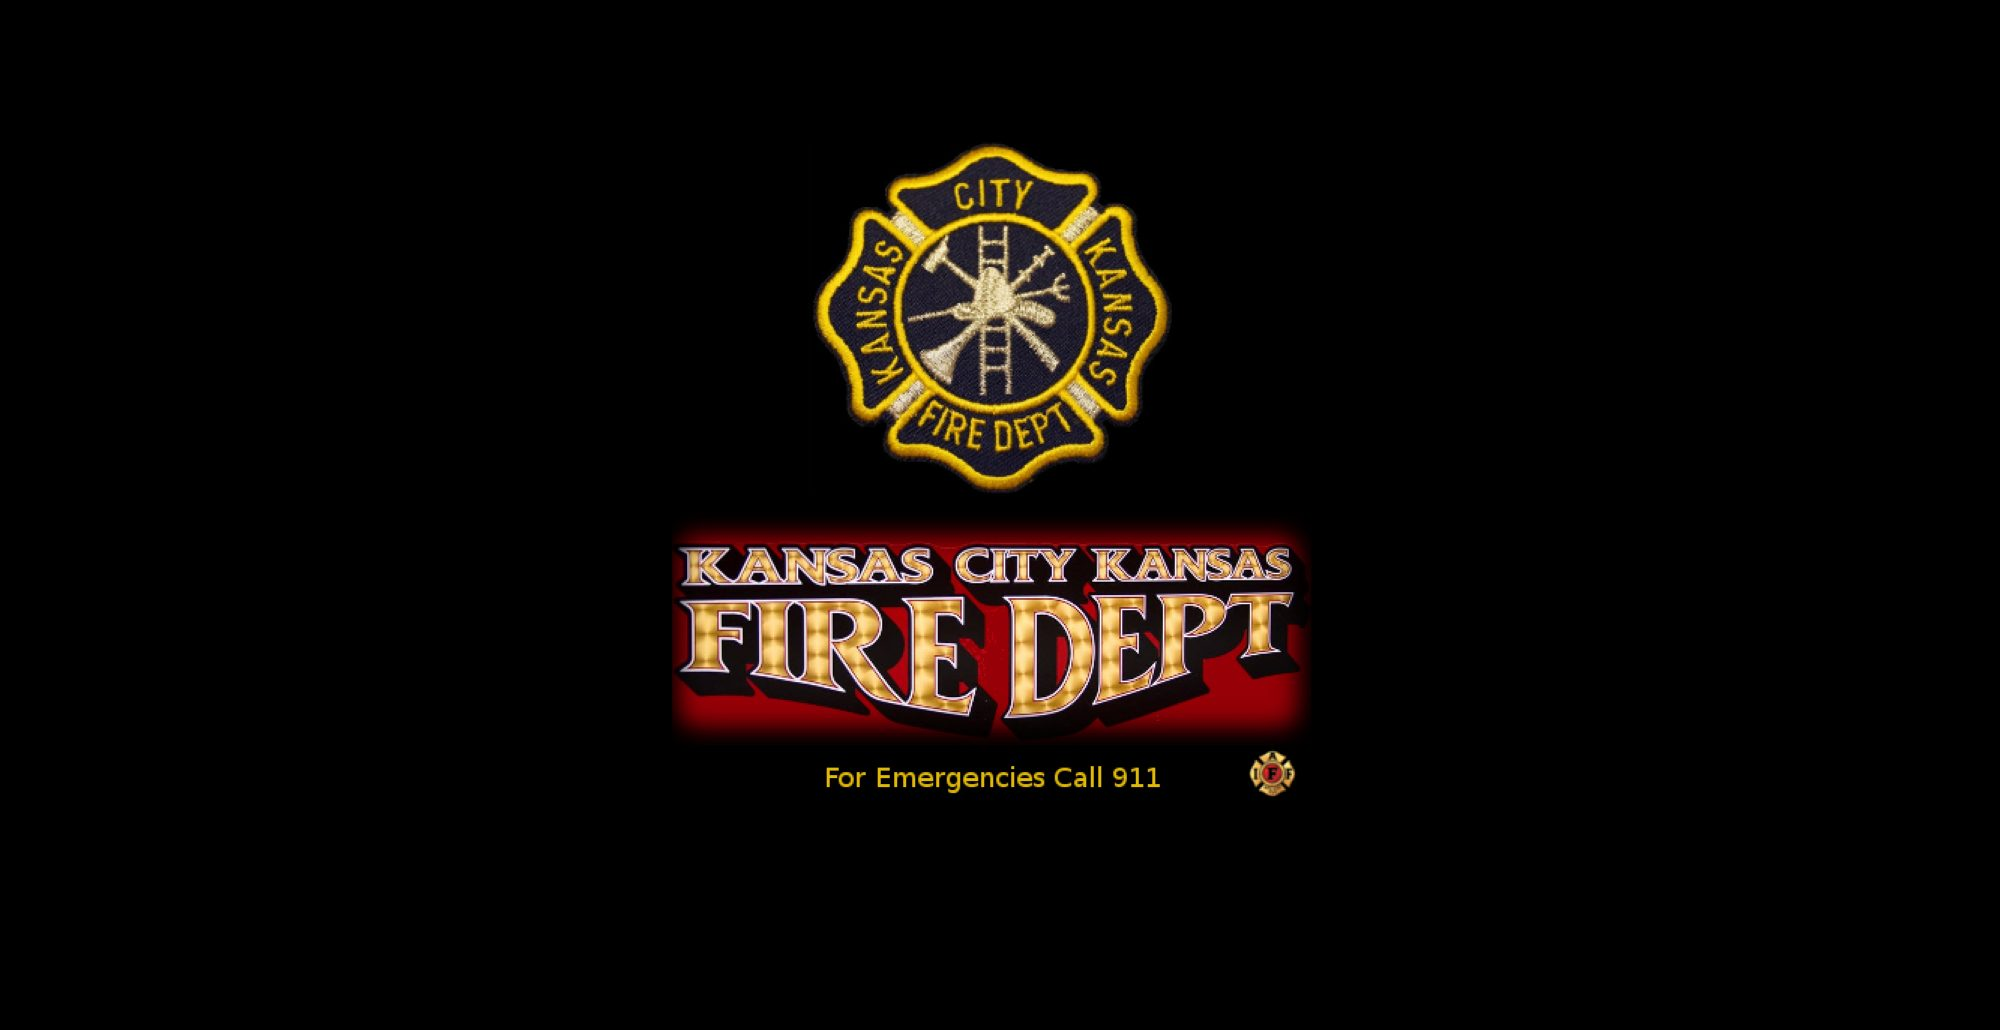 Kansas City Kansas Fire Department